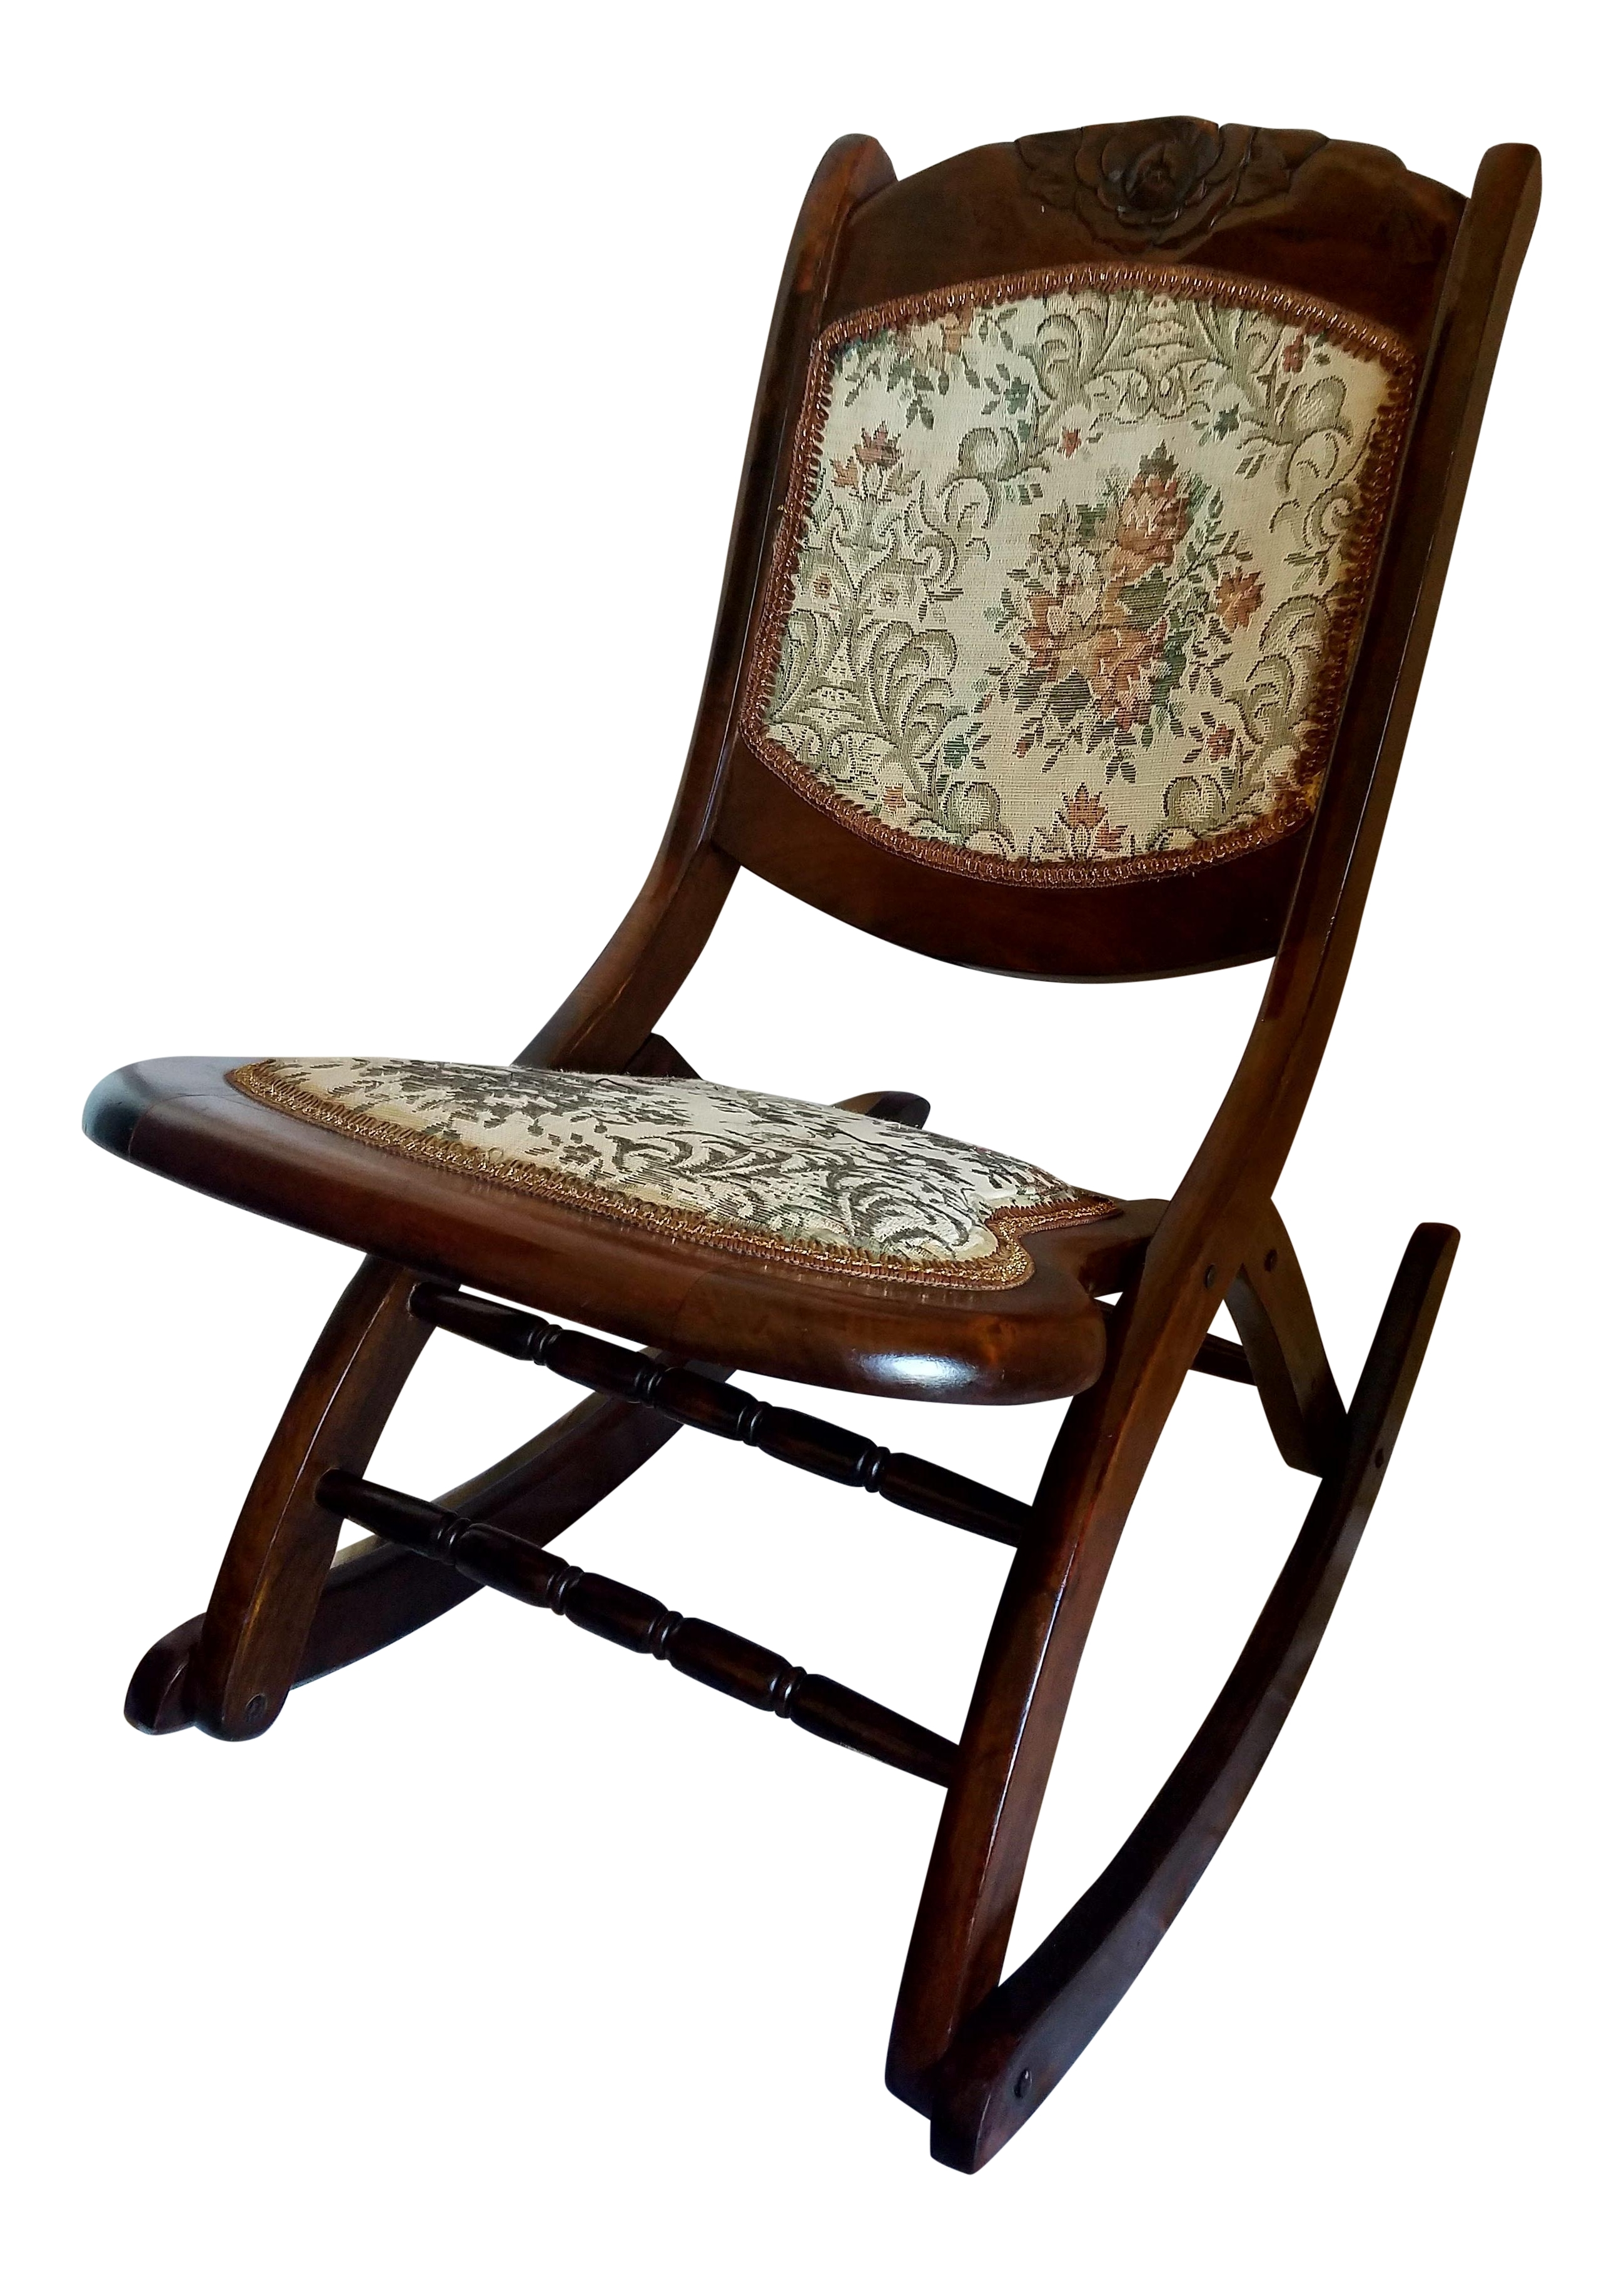 Antique Folding Rocking Chair Chairish Chairs With Lumbar Support Inside Rocking Chairs With Lumbar Support (View 10 of 15)